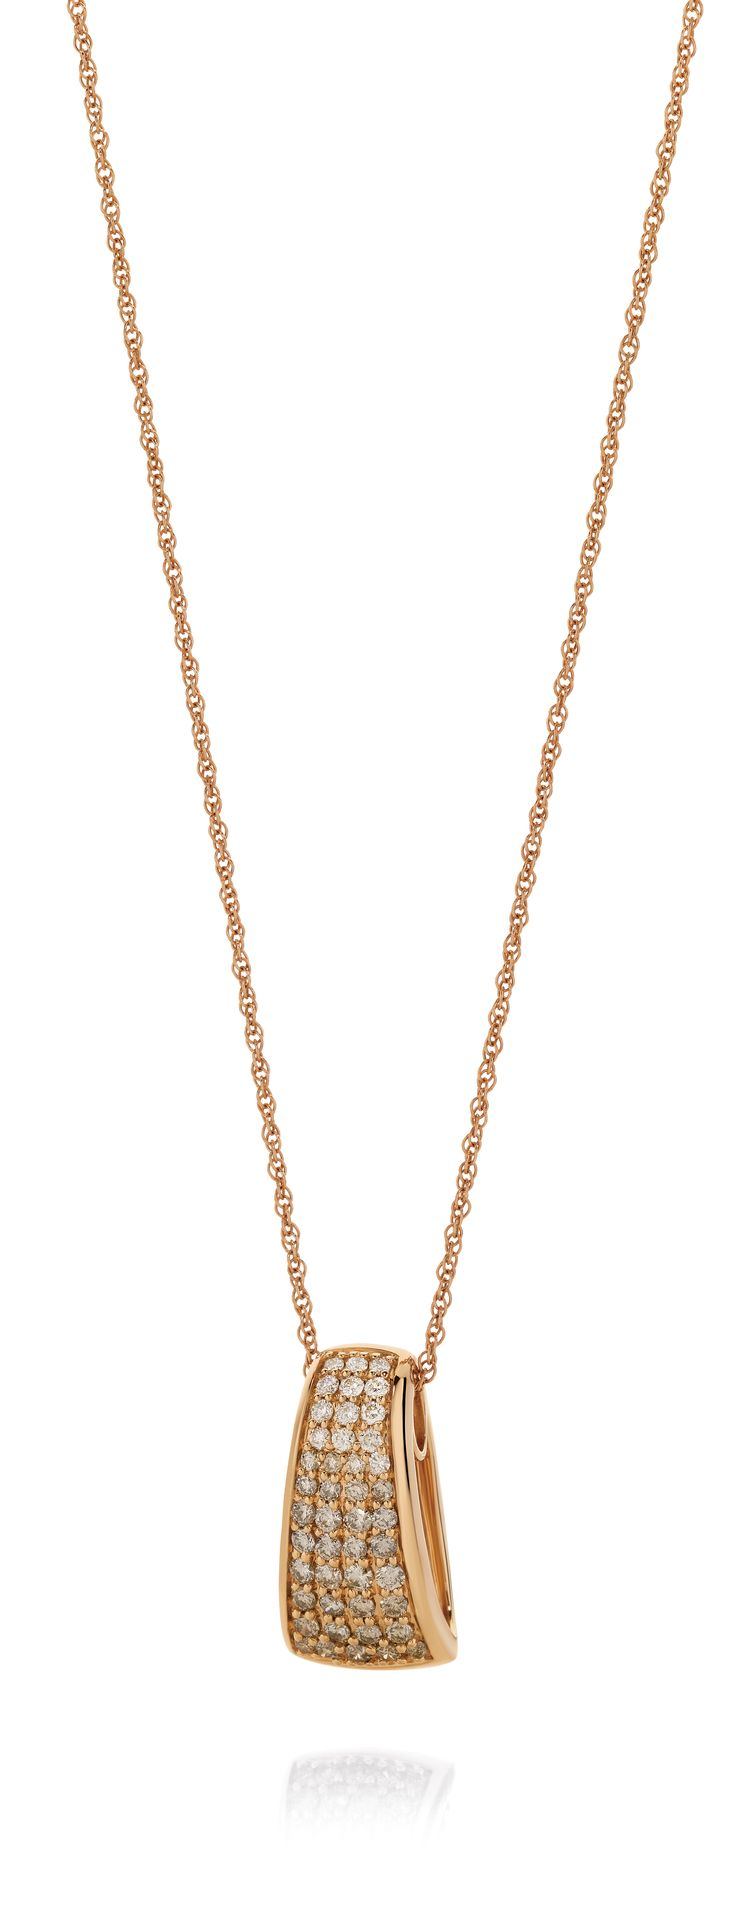 Dreamtime 9ct Rose Gold 0.75ct Graduated Diamond Pendant... Check out the matching ring!